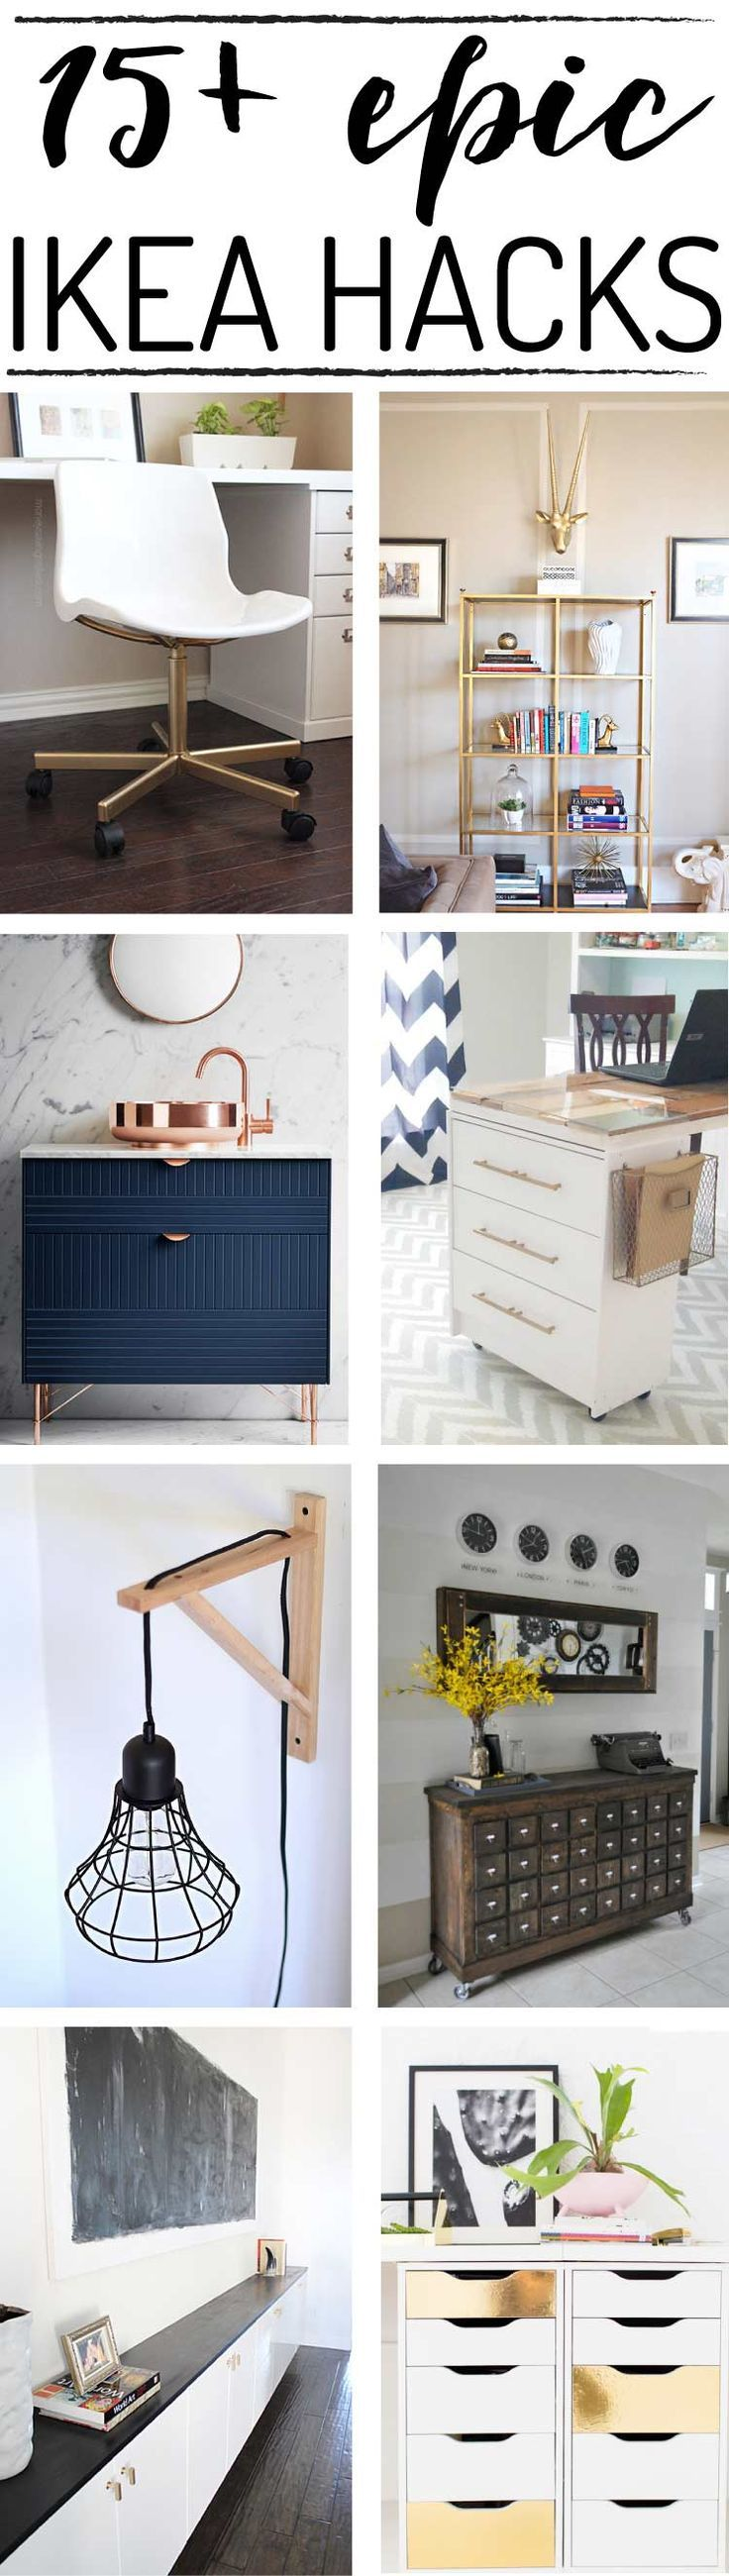 15 epic IKEA hacks that you can't seen somewhere else // furniture, decor, and organizing ideas